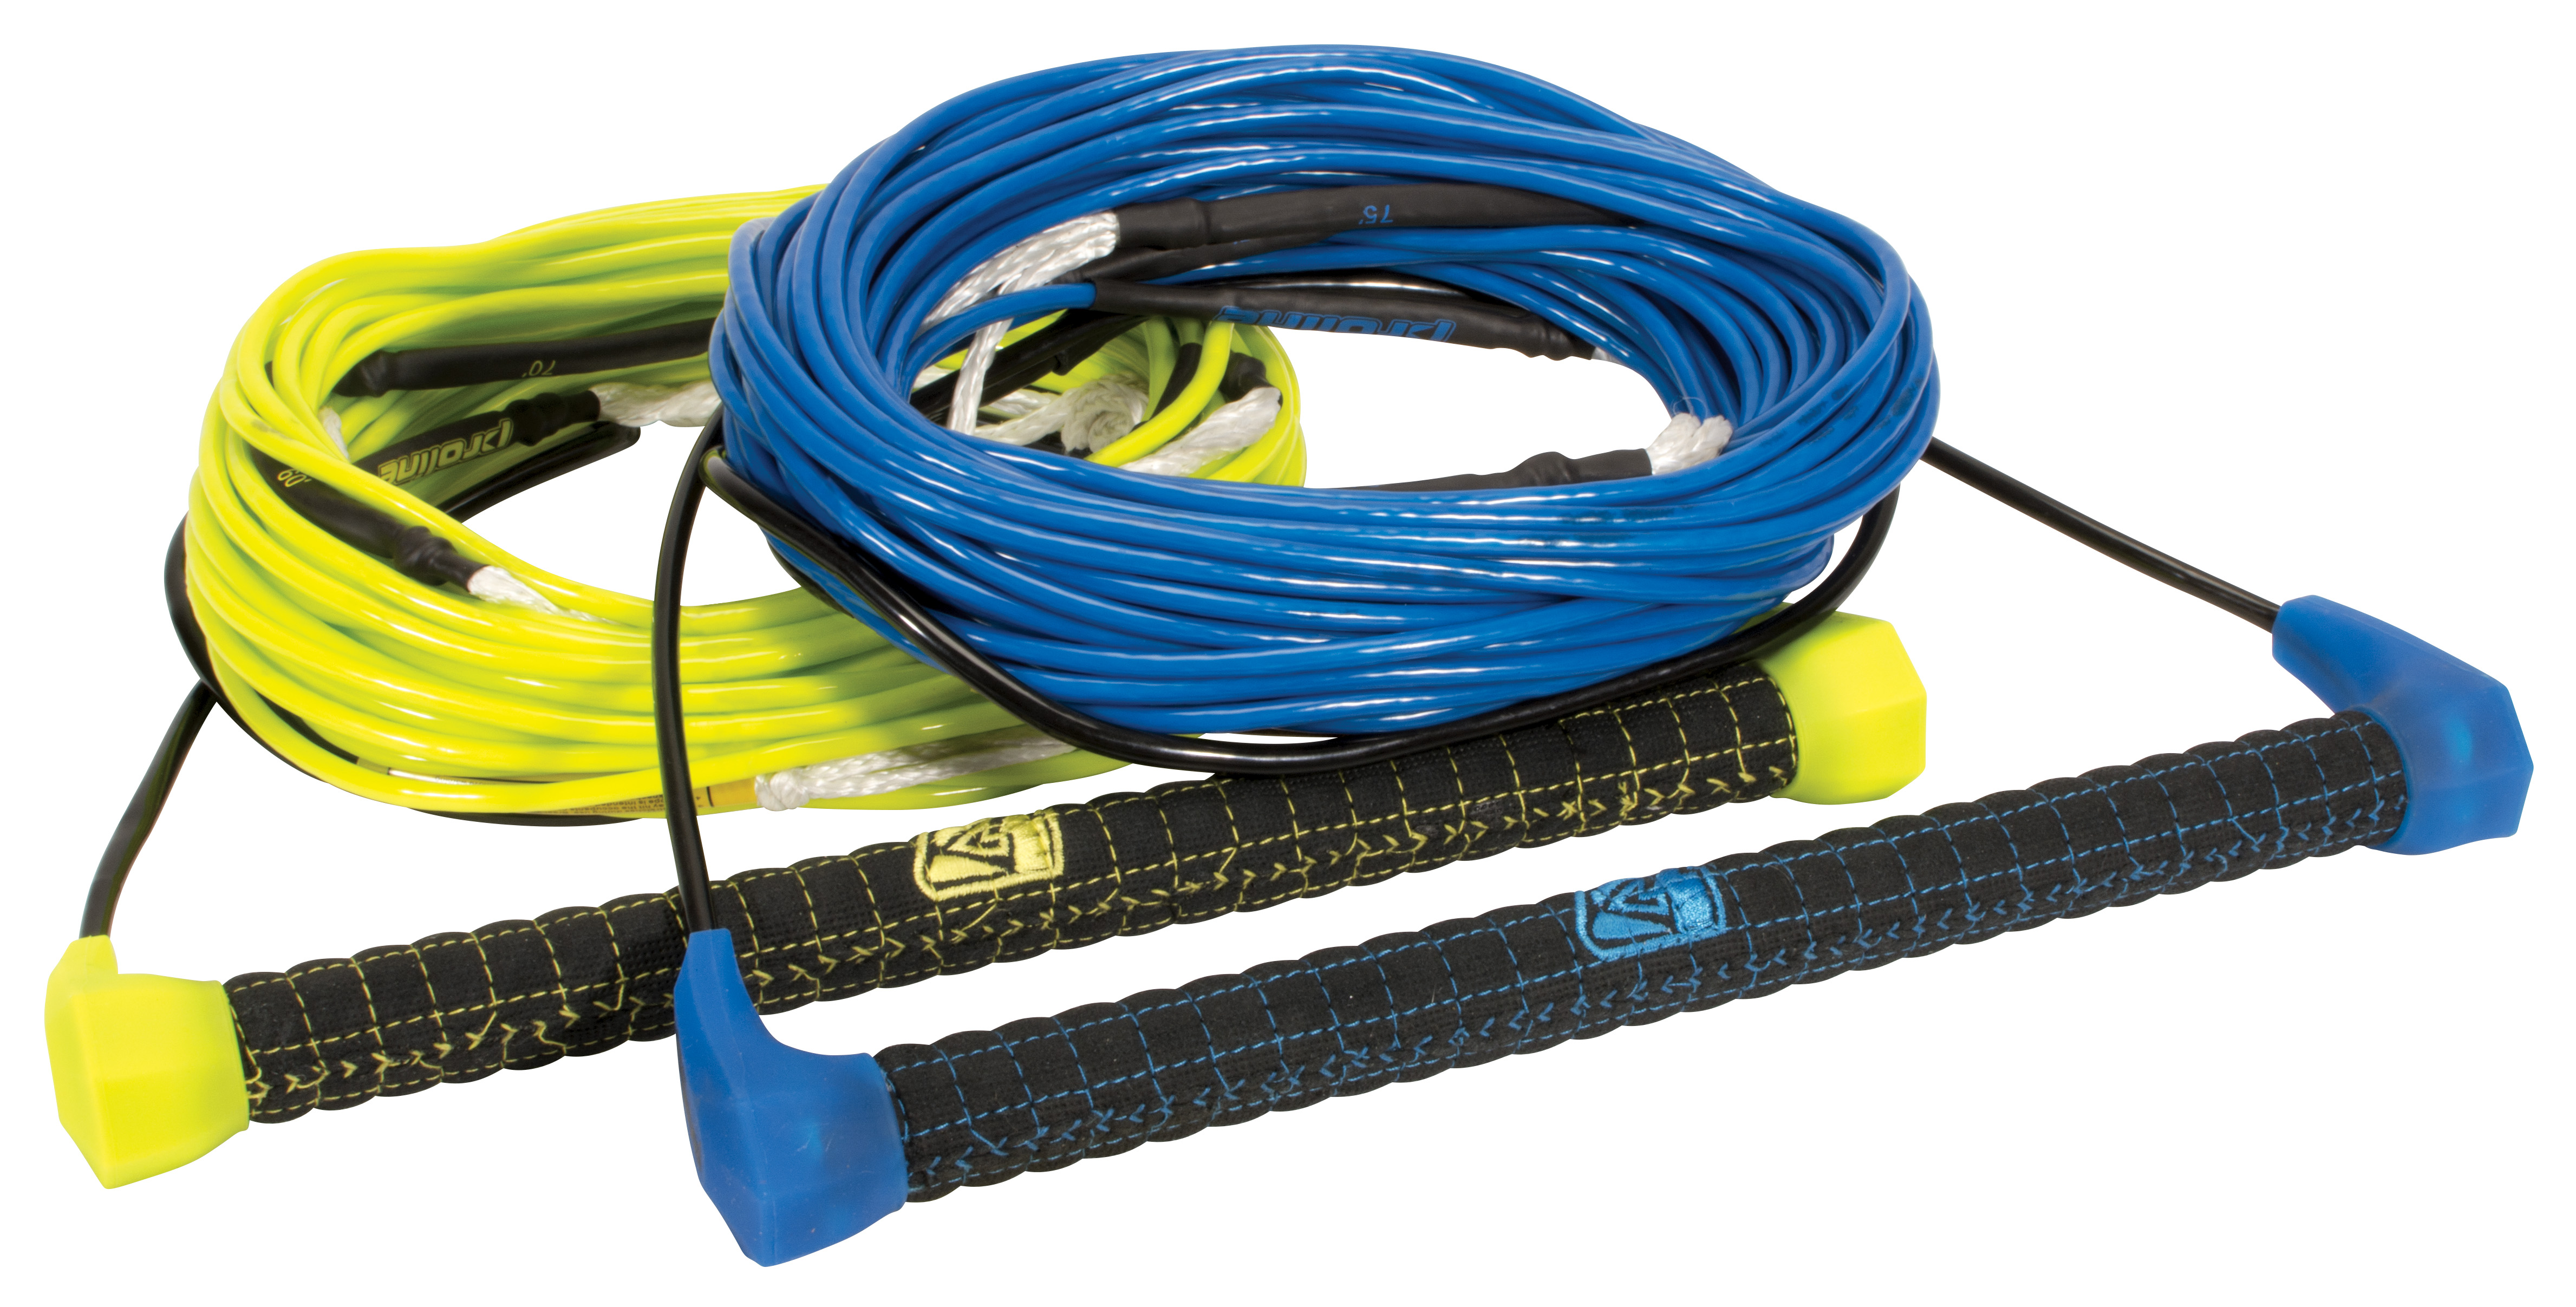 LGS² HANDLE W/80' DYNEEMA MAINLINE PACKAGE CONNELLY 2018